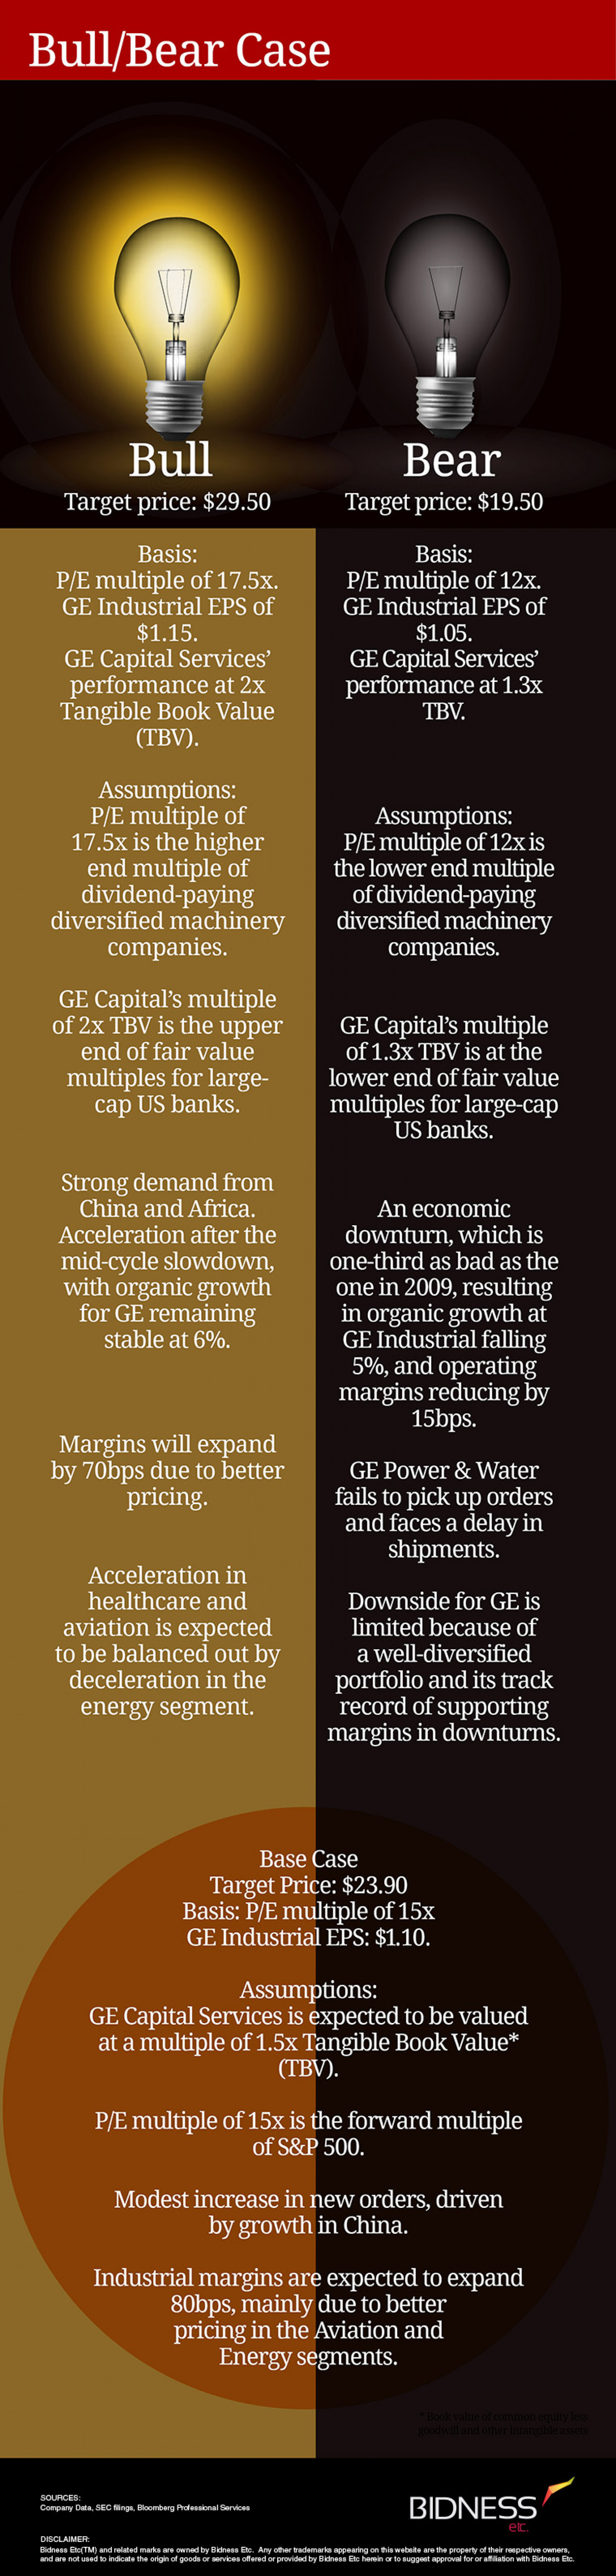 General Electric Bull Bear Case Infographic